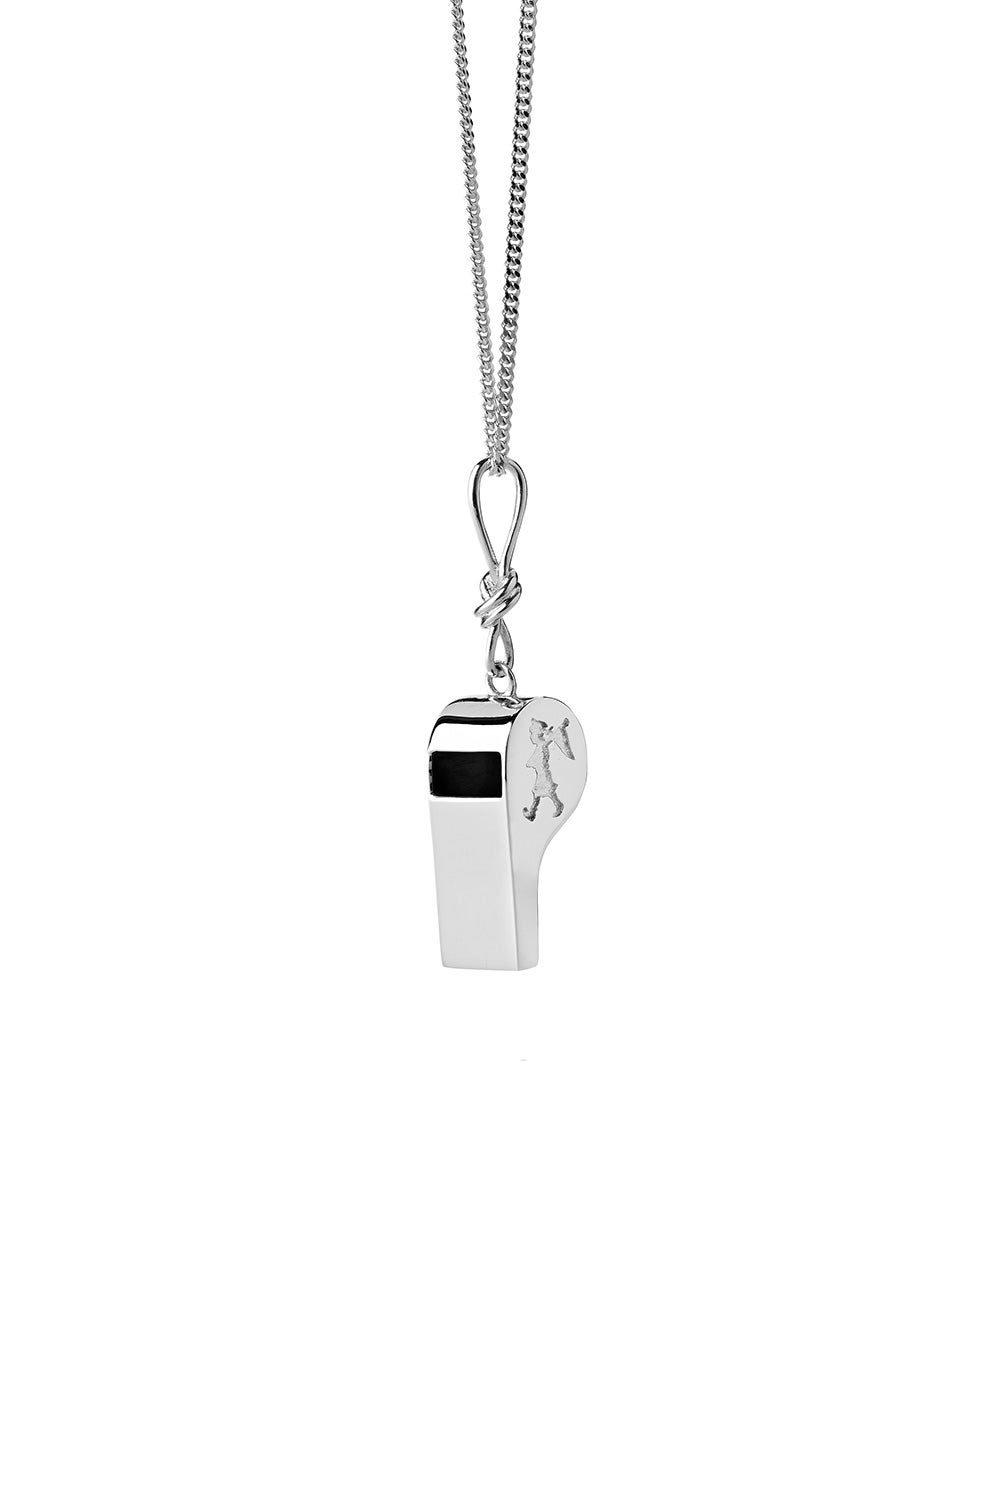 Navigator's Whistle Necklace Silver